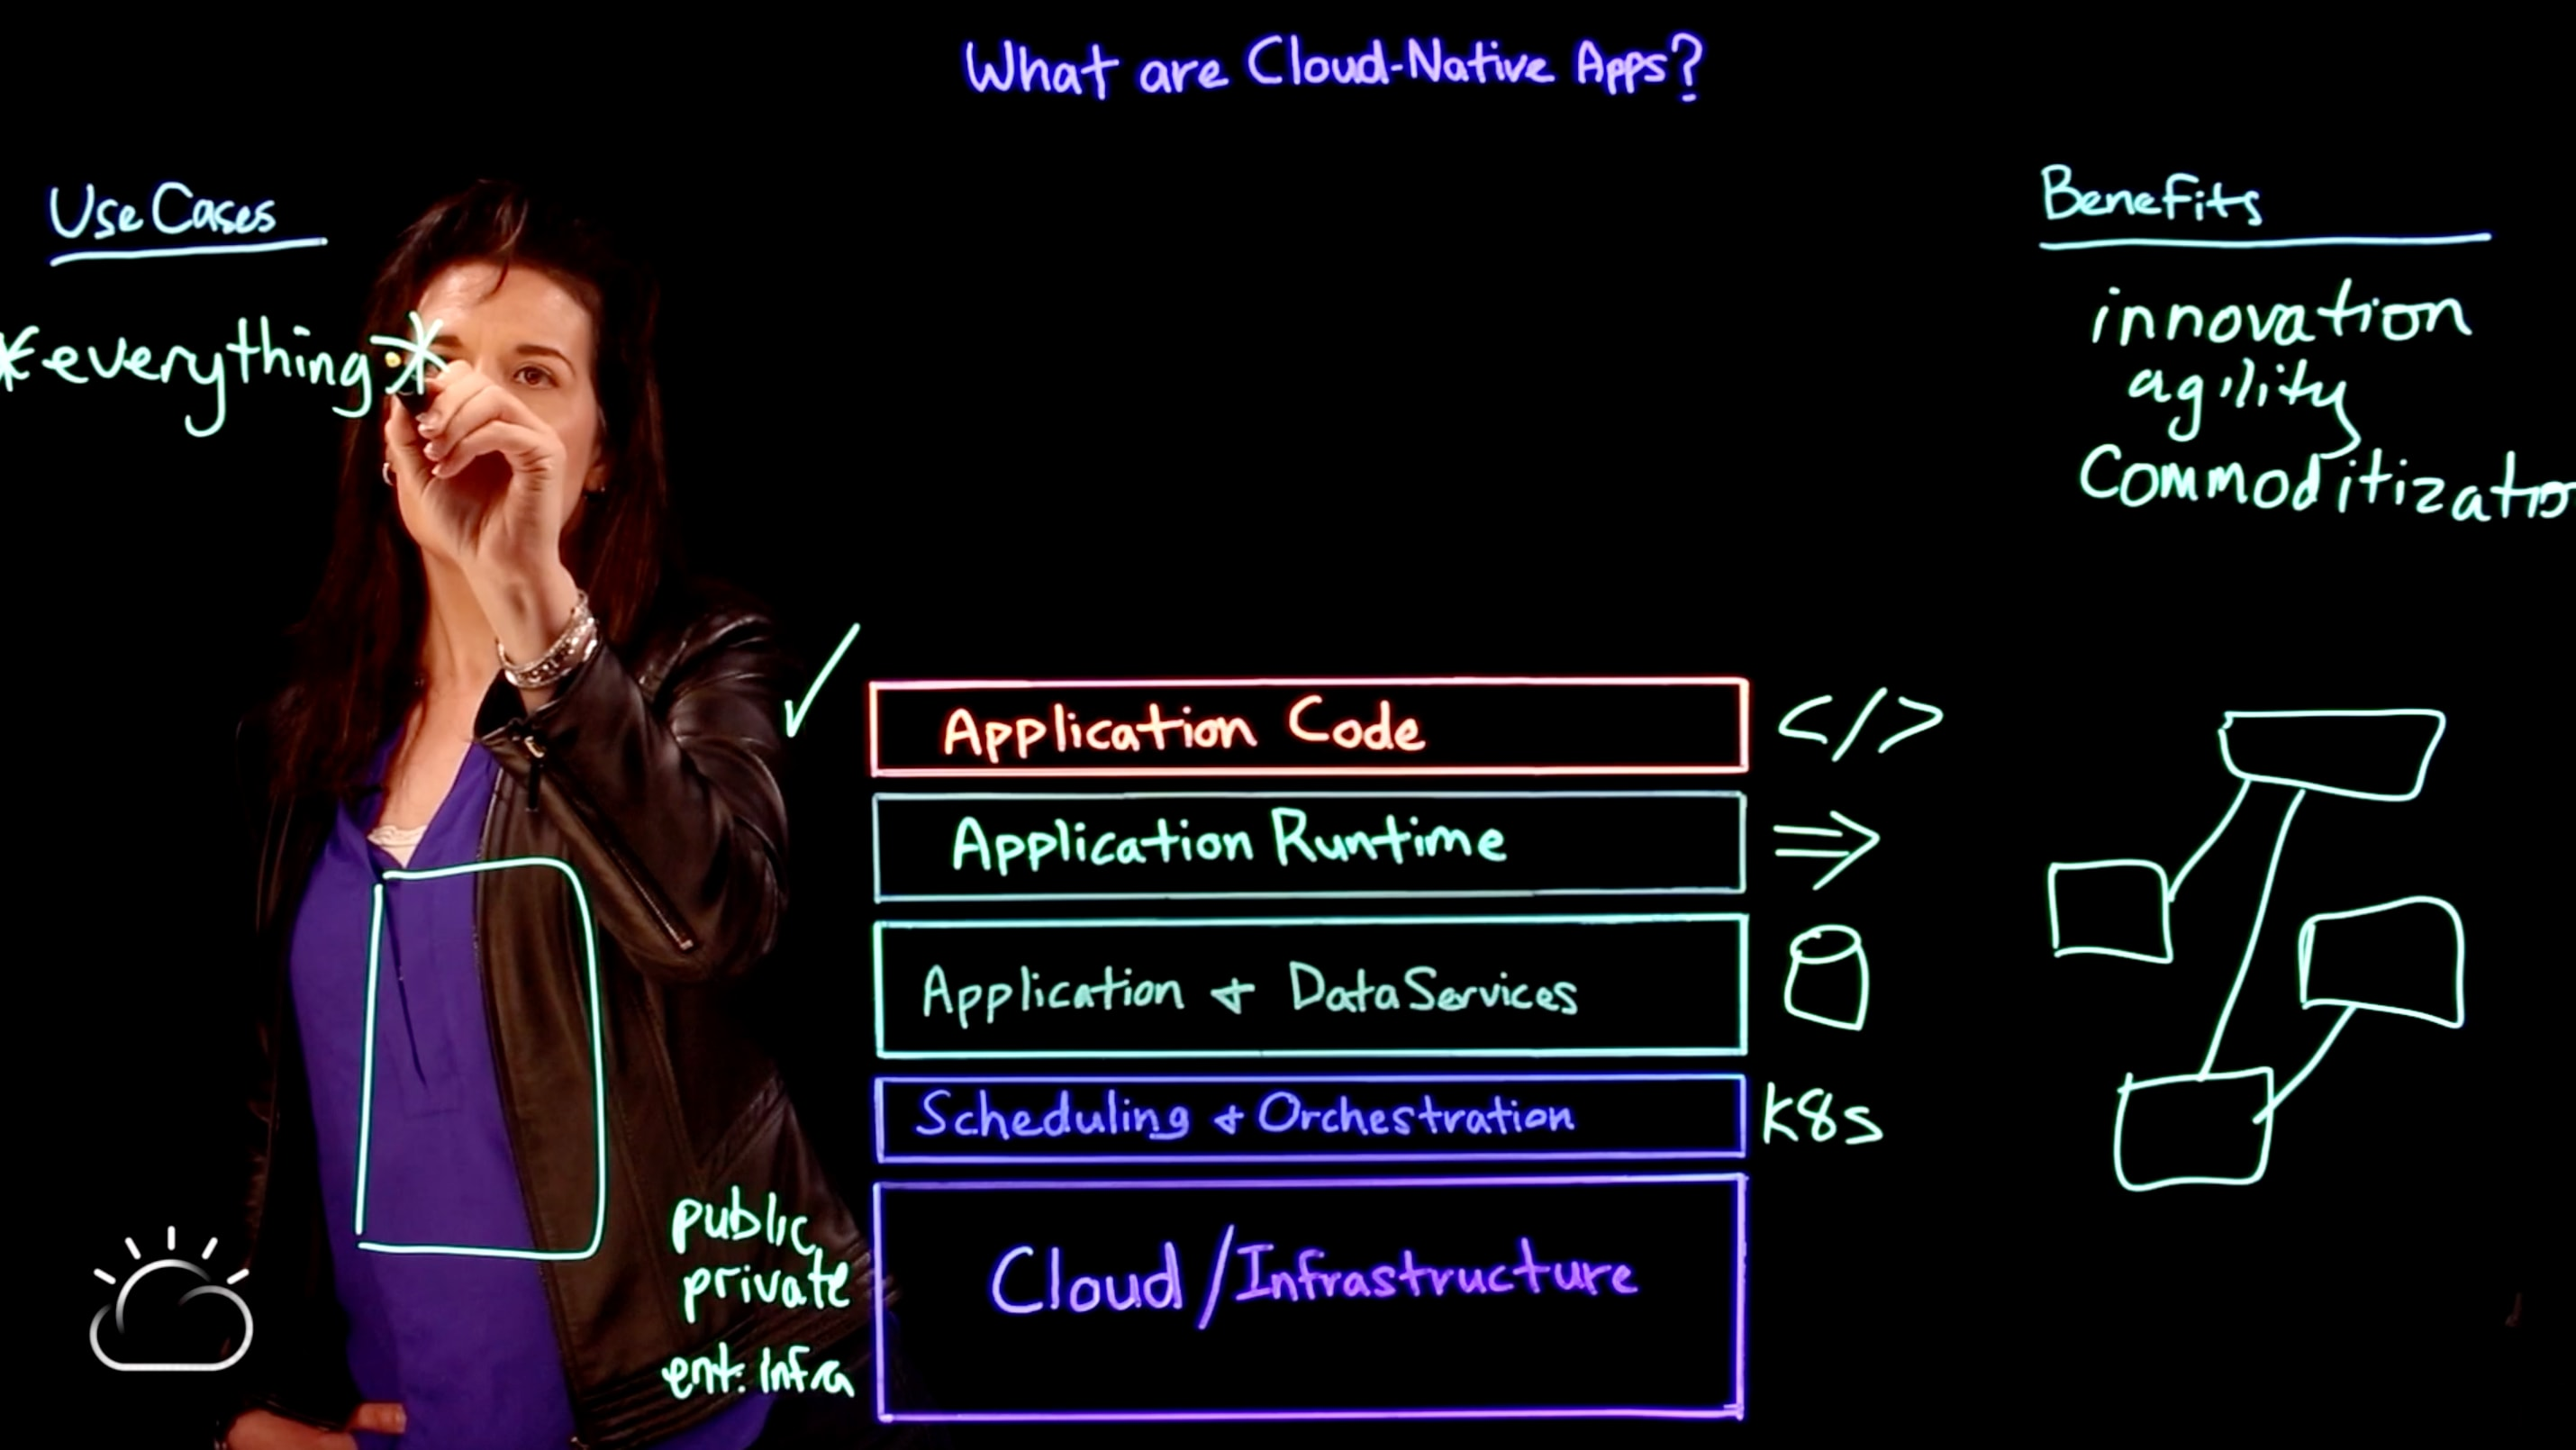 Use cases for cloud-native apps